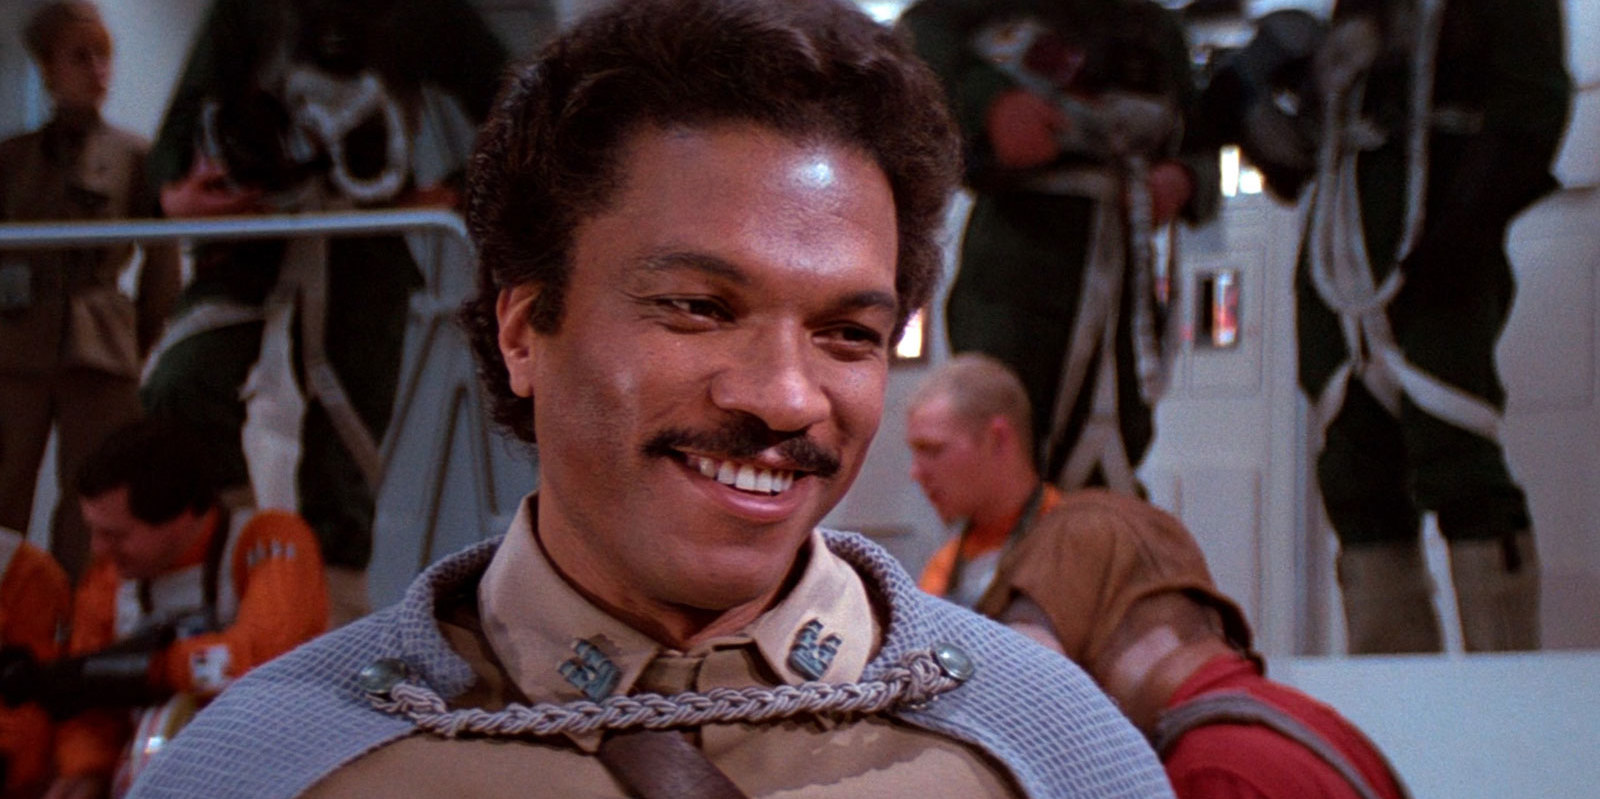 The original Lando Calrissian is having a hard time picturing anyone else as the character